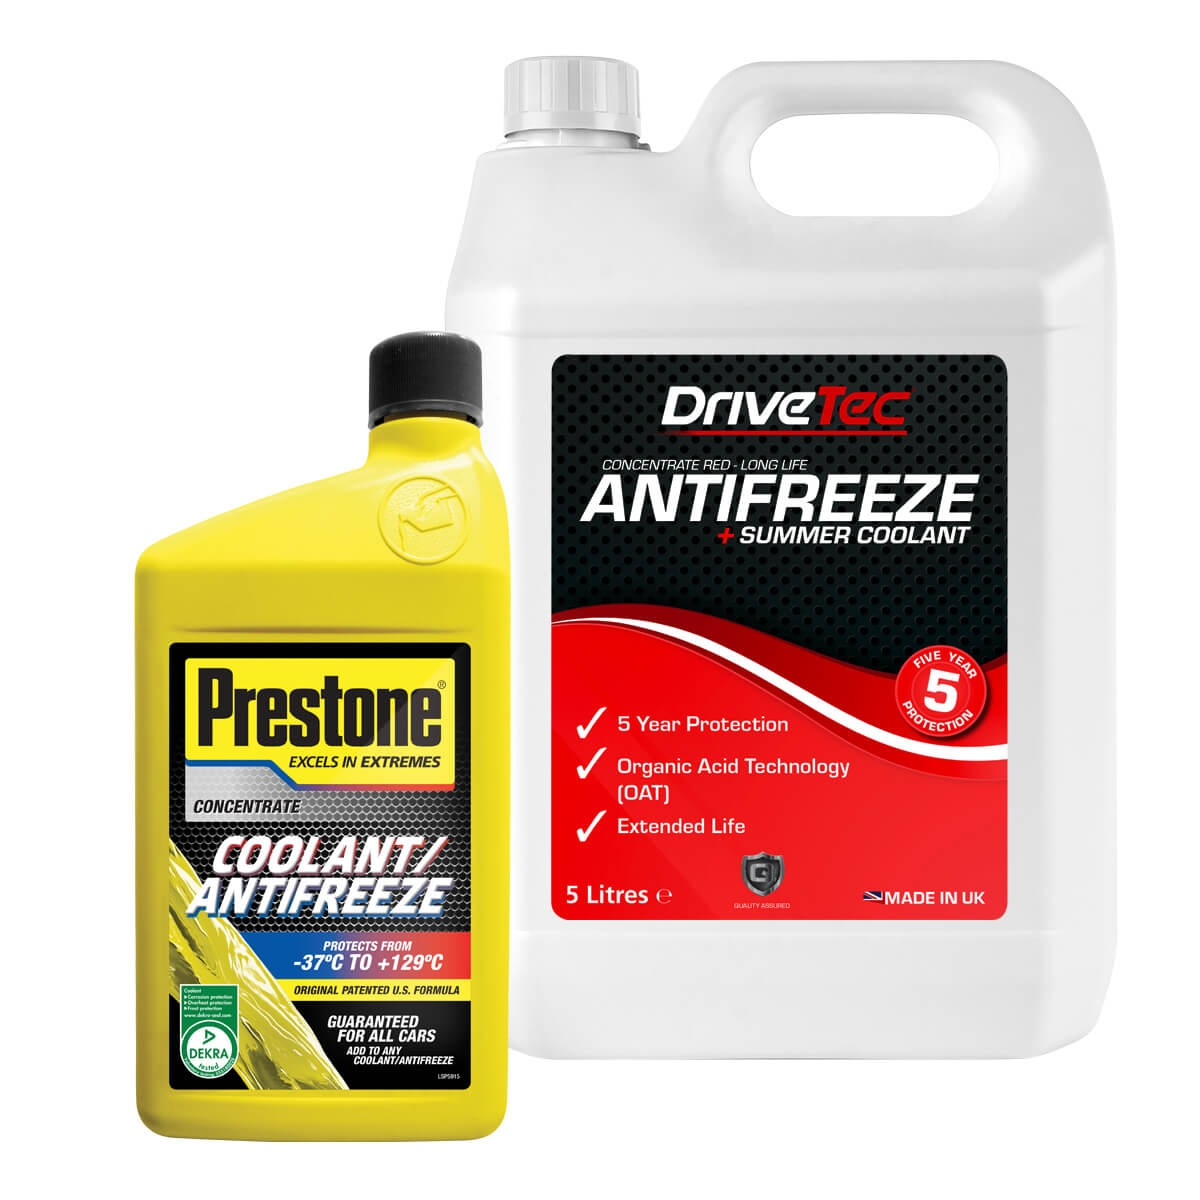 CITROEN 2 CV Antifreeze & Coolant